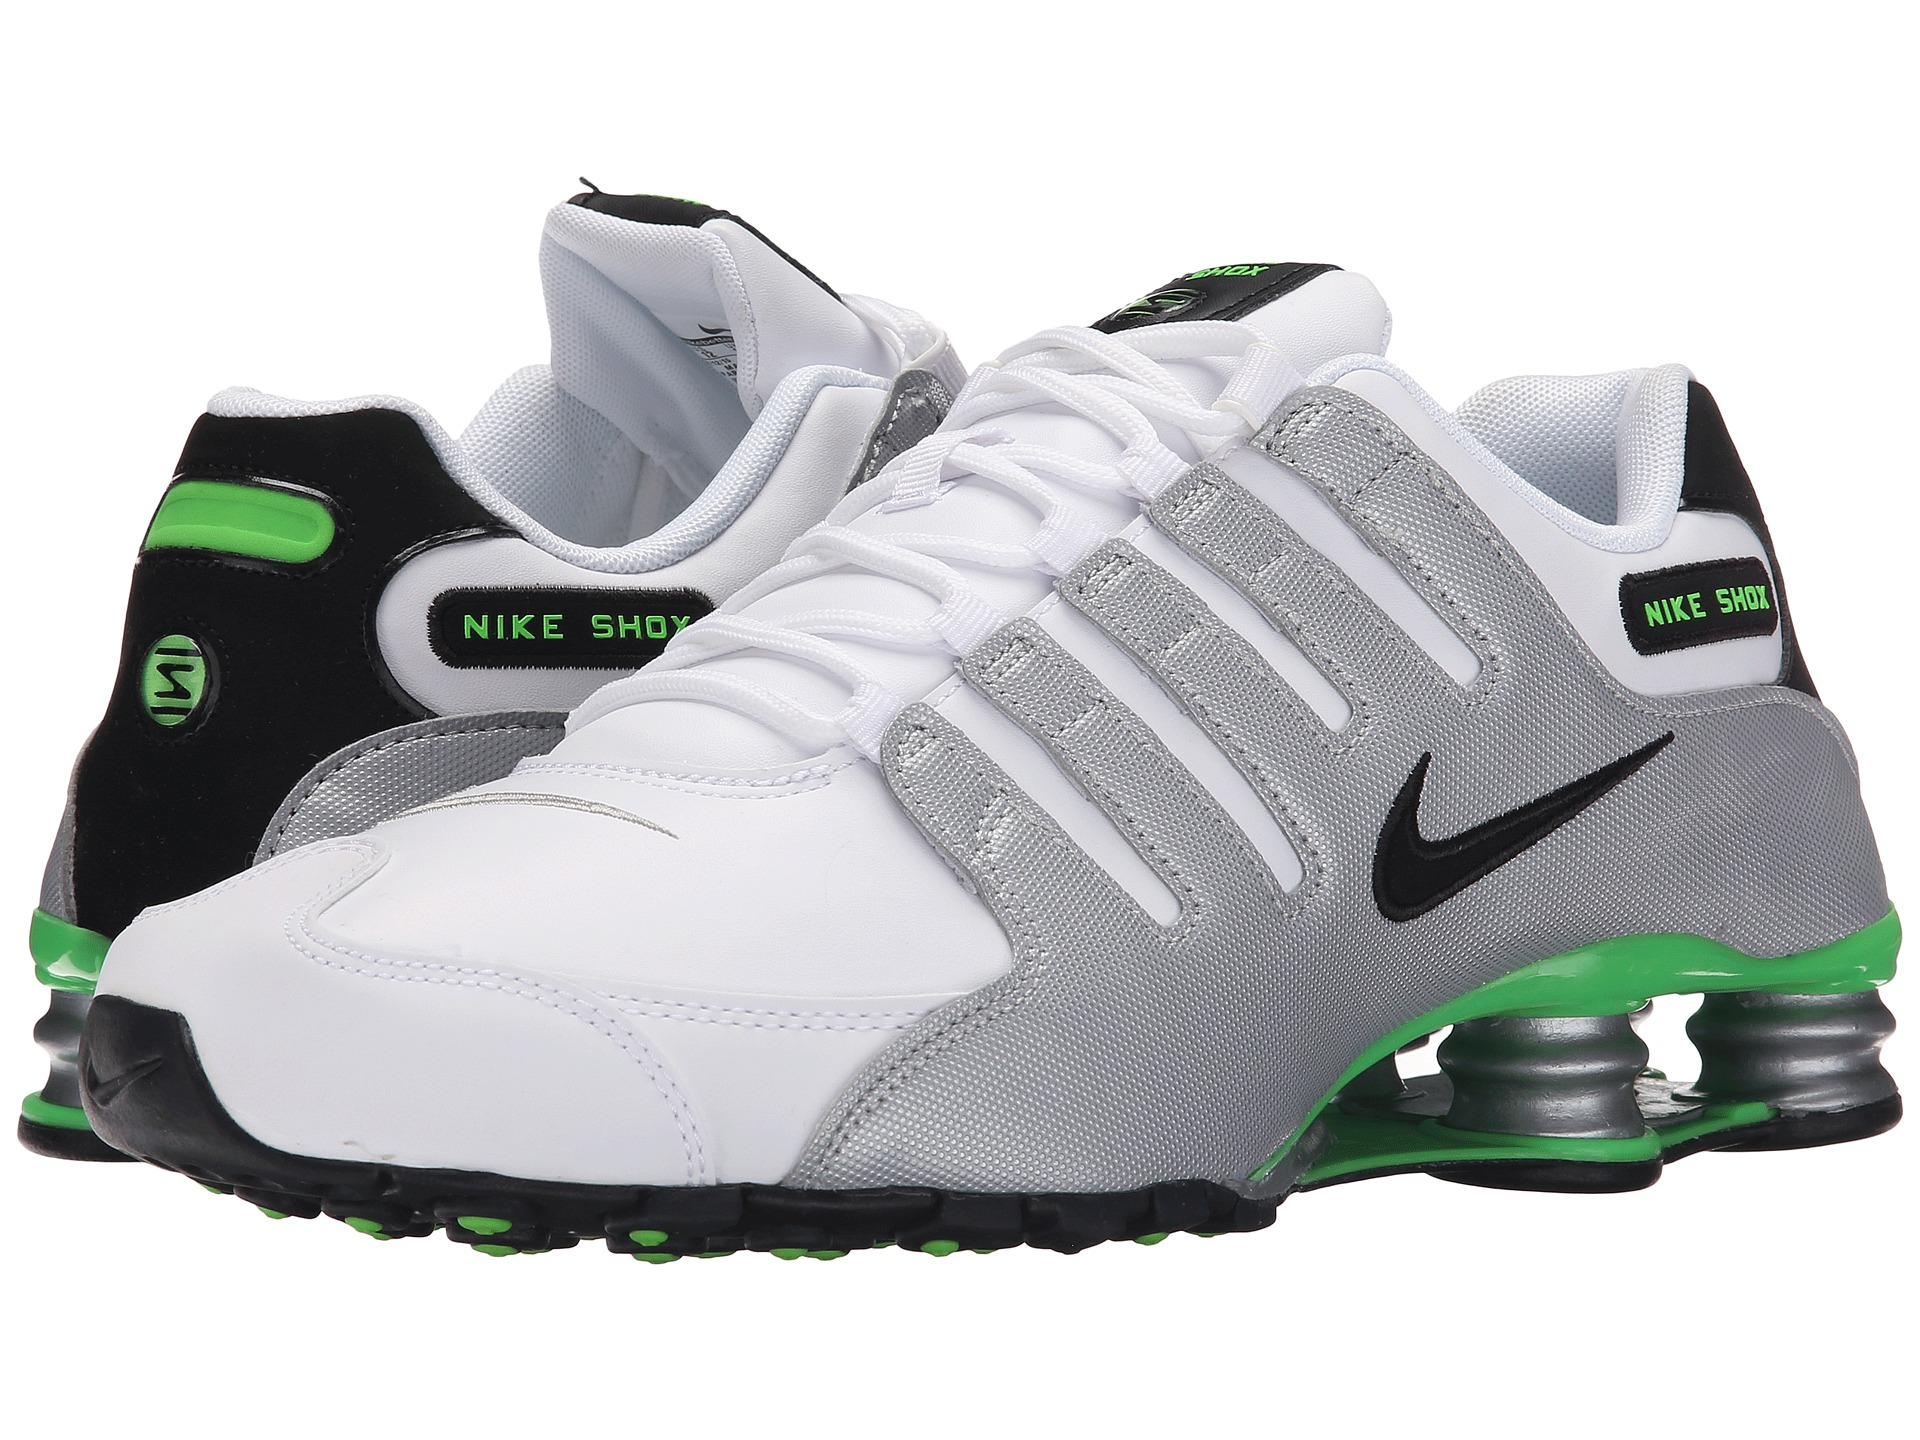 0e79b944ea4 ... uk lyst nike shox nz in white for men 771ee 85b99